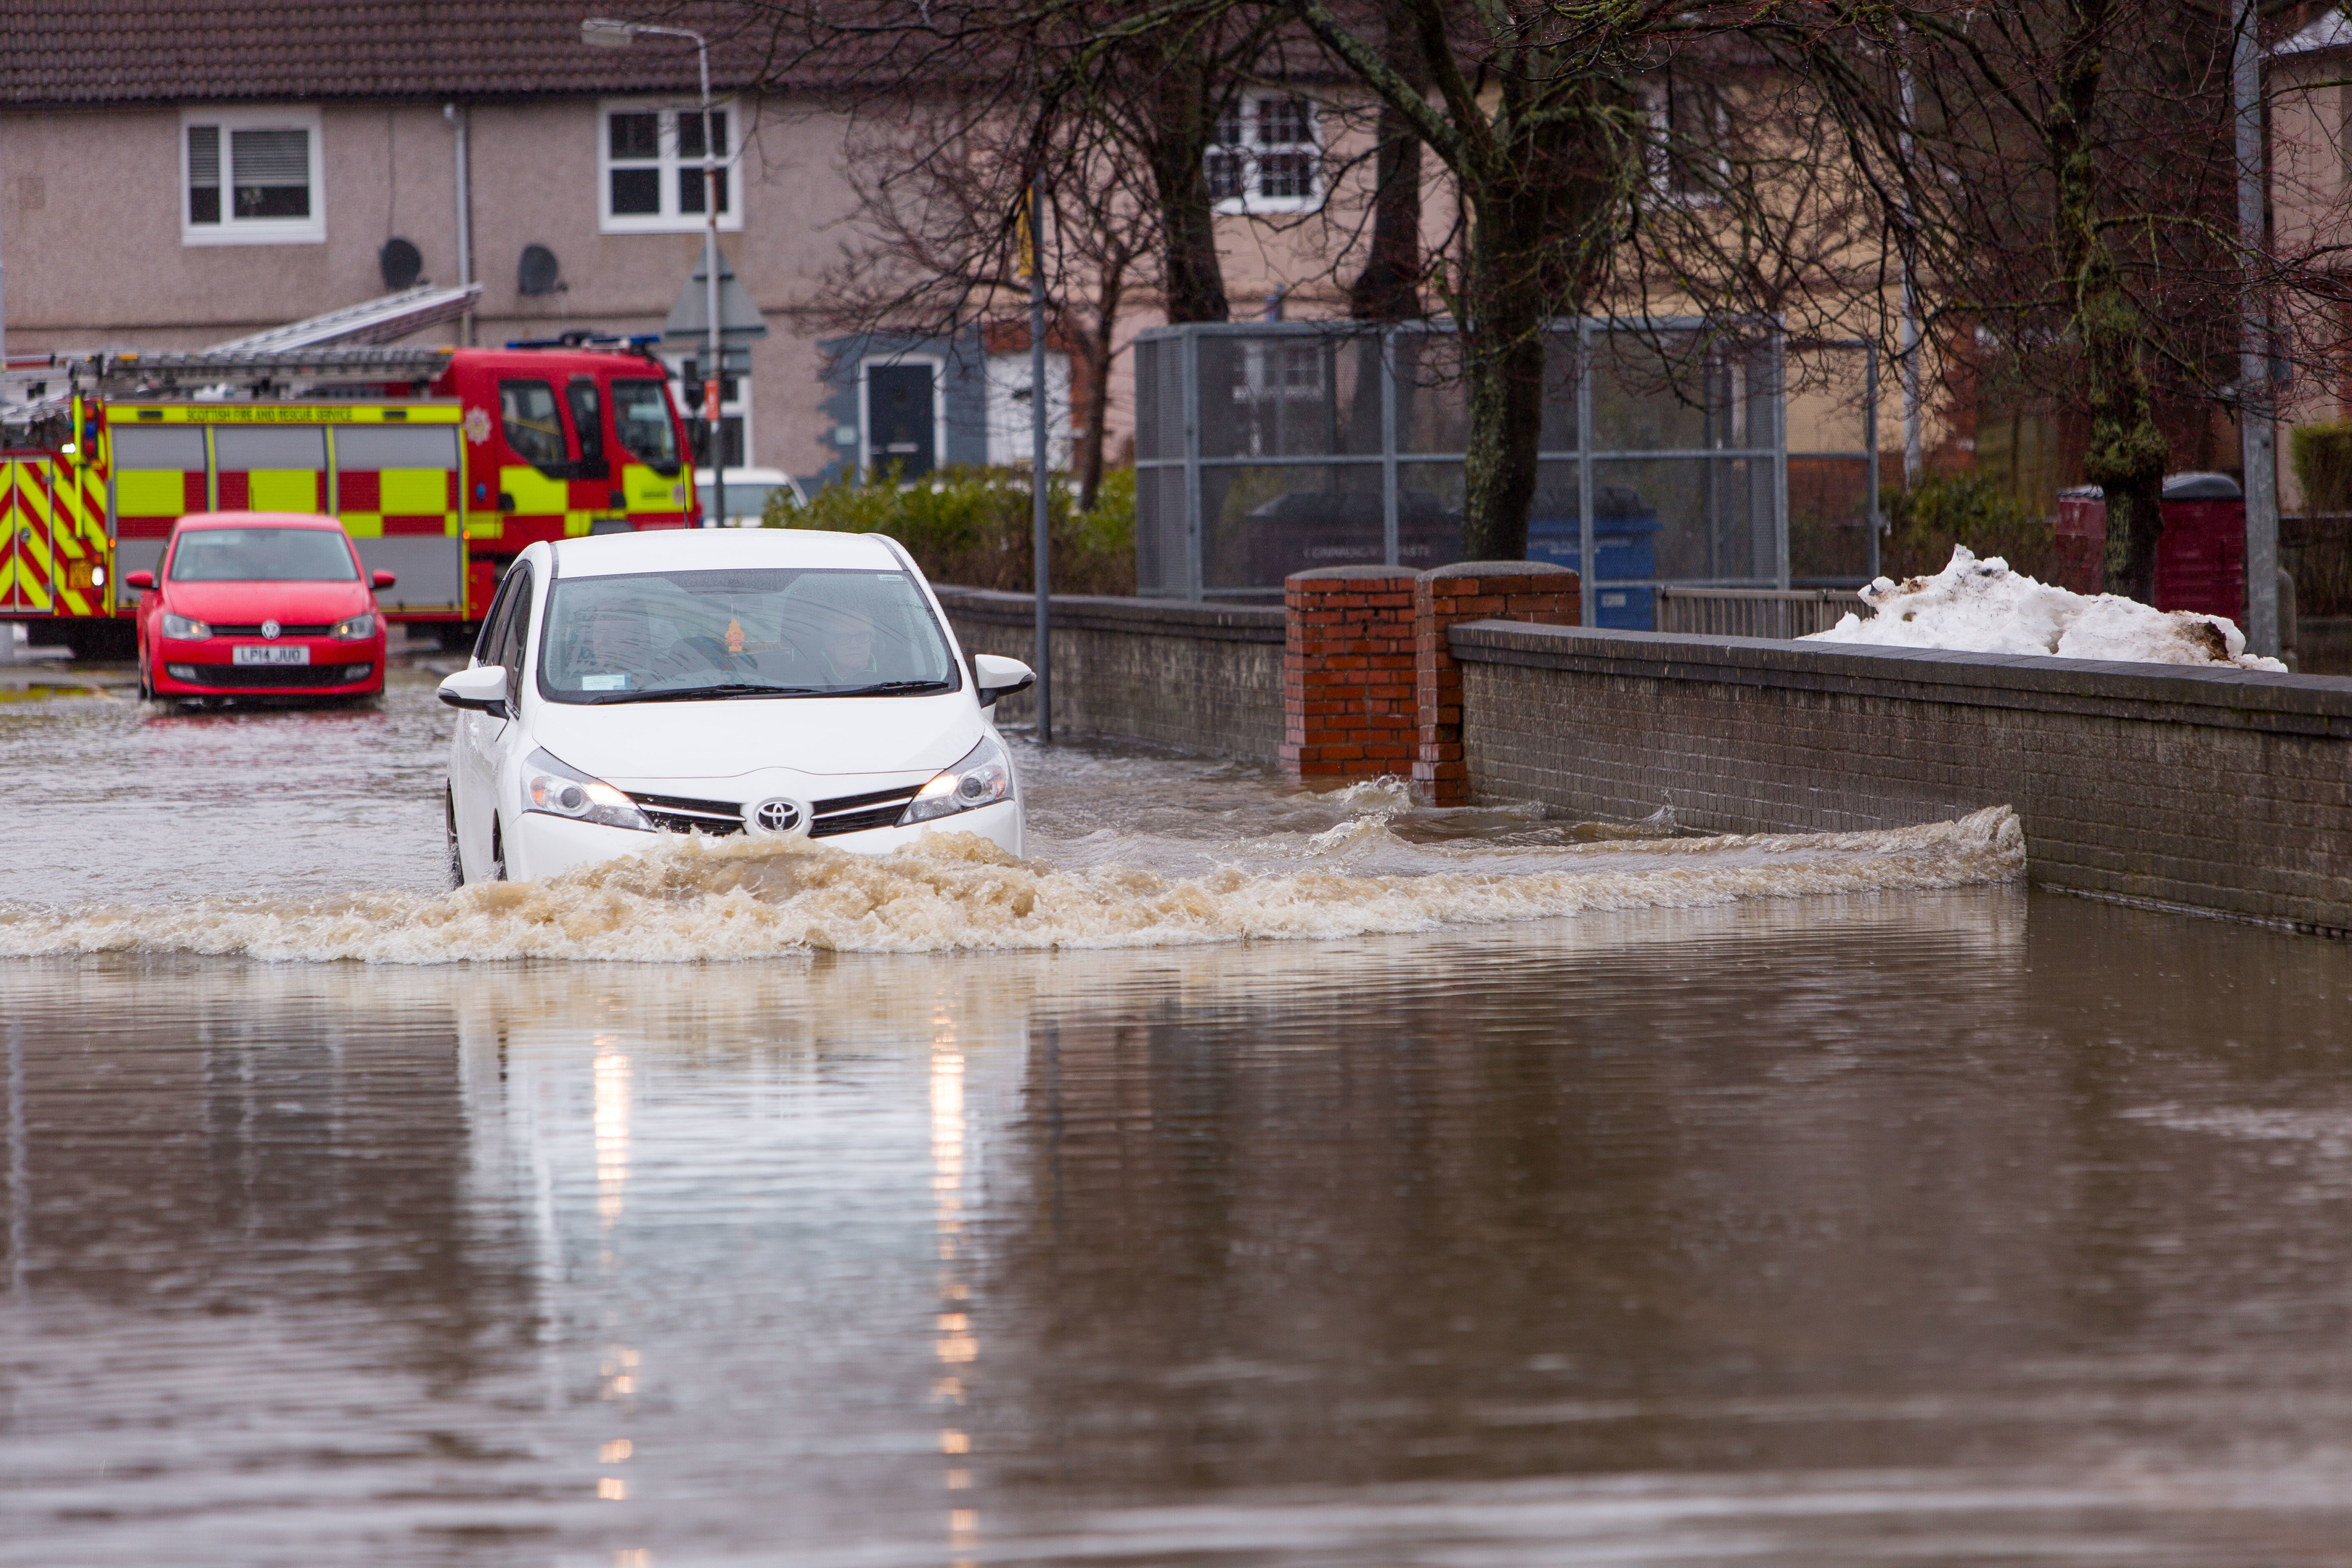 The Park Road area was flooded again on Tuesday